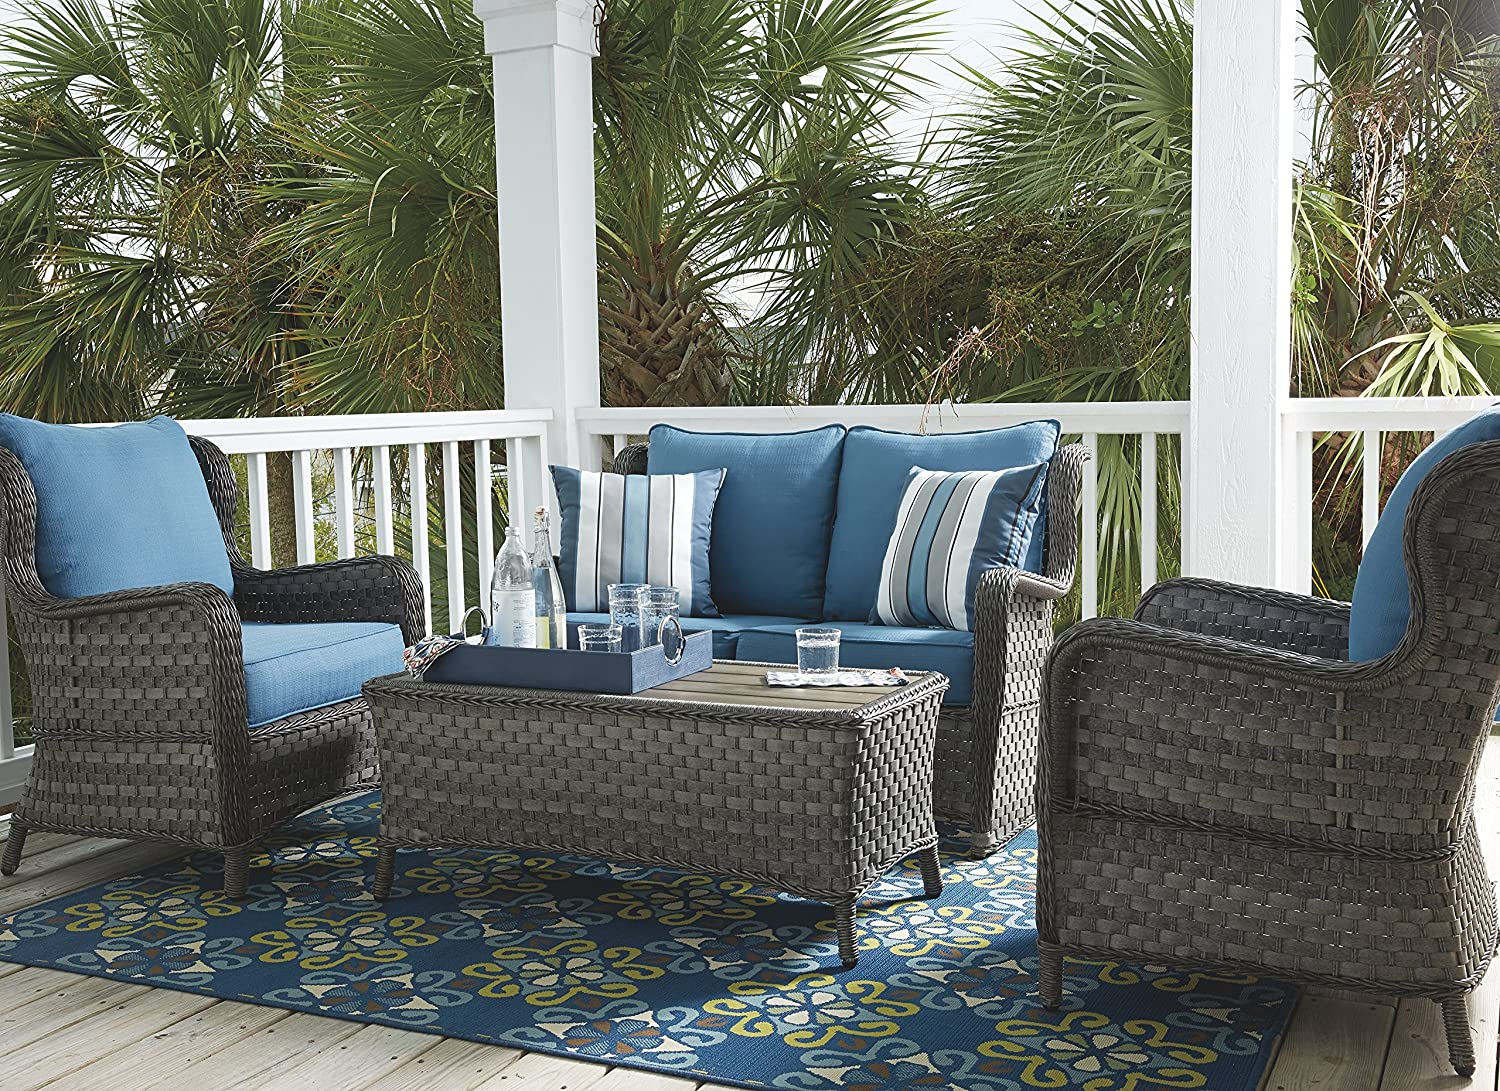 Ashley Furniture Signature Design – Abbots Court Outdoor Lounge Chair with Cushions – Set of 2 – Wicker – Blue Gray